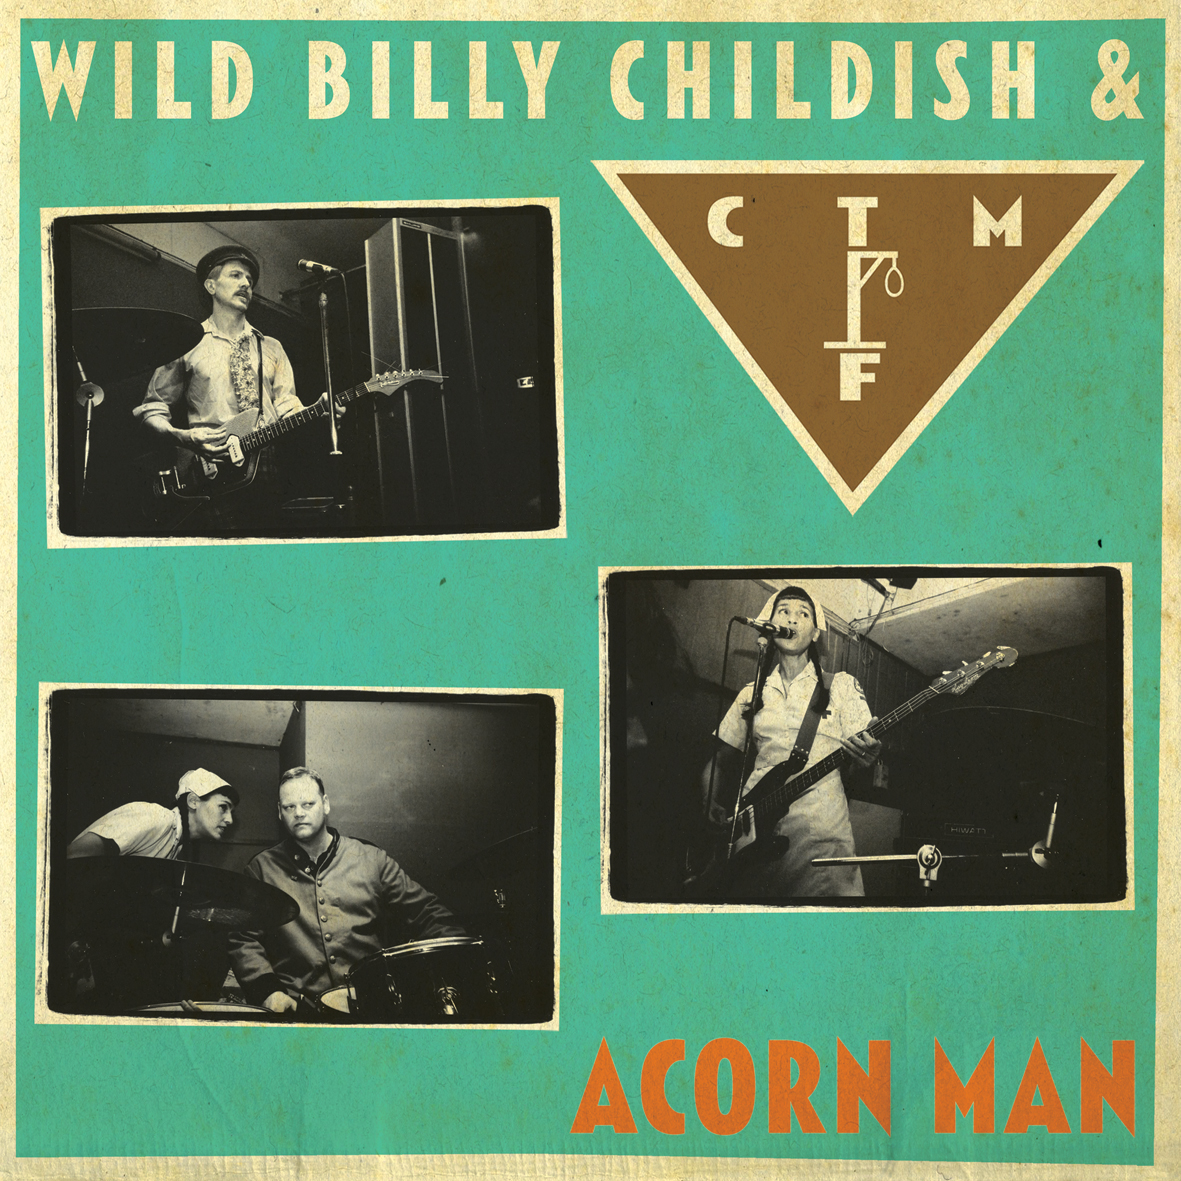 WILD BILLY CHILDISH & CTMF Acorn Man LP